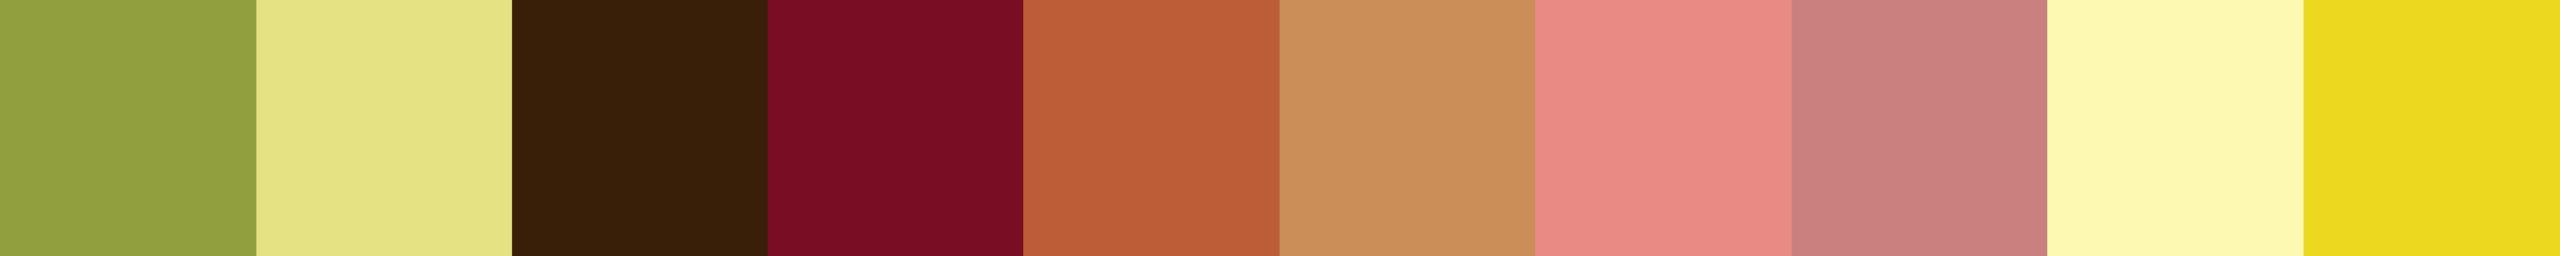 302 Fococou Color Palette